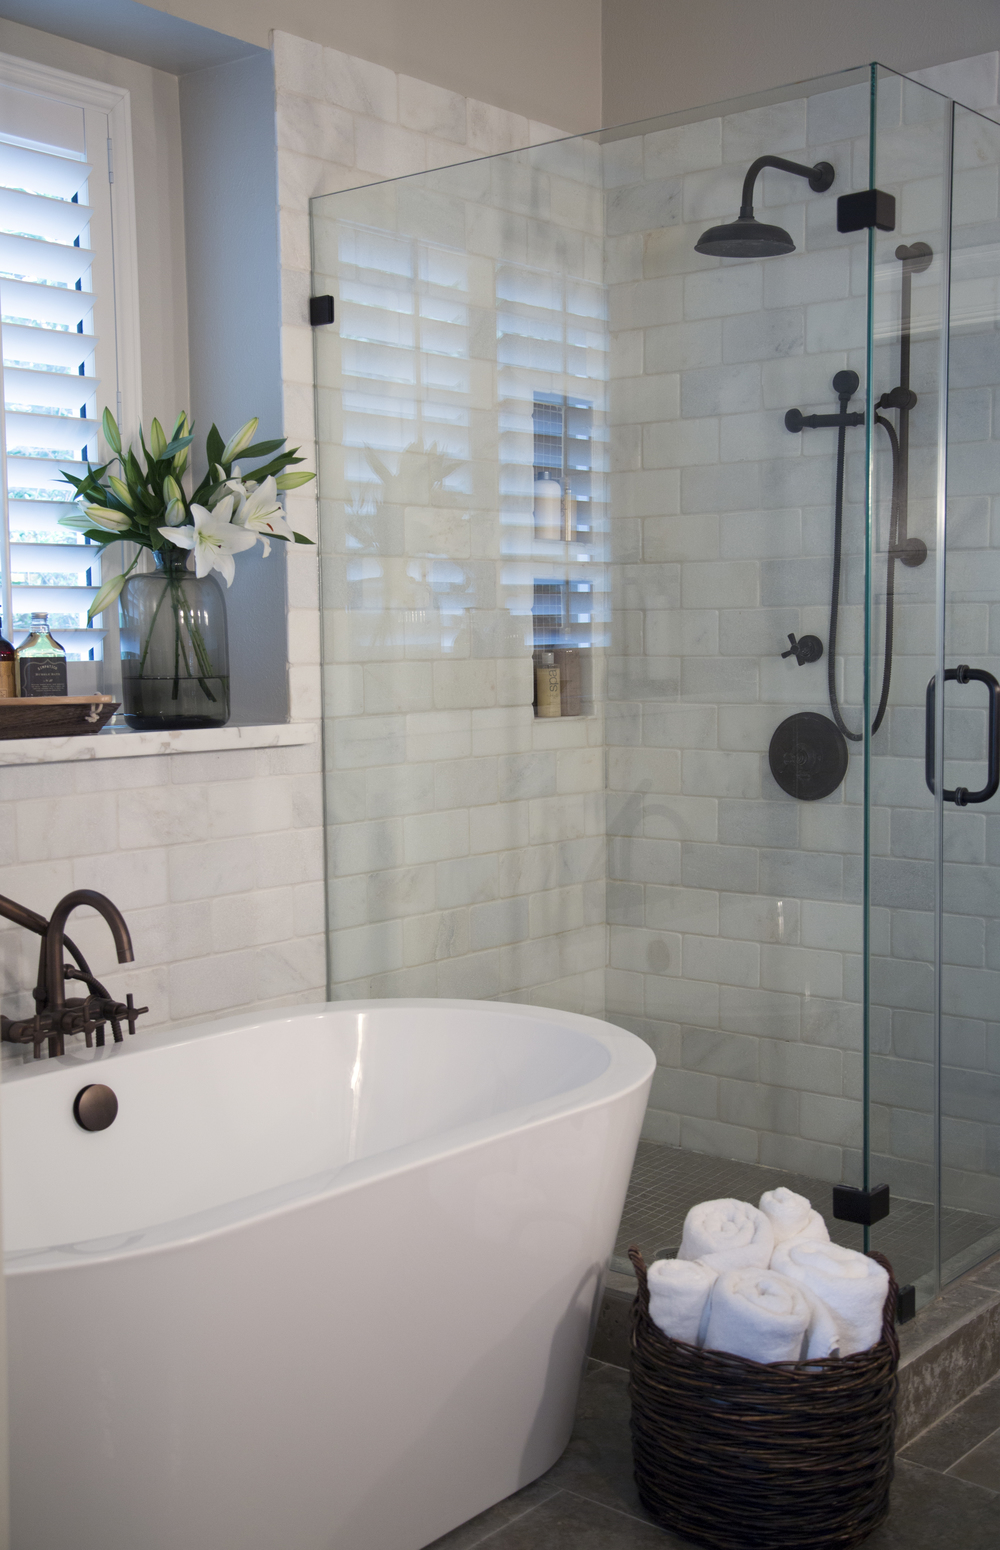 "MUST-SEE: BEFORE & AFTER: A CONFINED BATHROOM IS UPLIFTED WITH BOUNTIFUL SPACE! ➤ http://carlaaston.com/designed/before-after-confined-bathroom-uplifted-bountiful-space | ""Overall, this bathroom was dated, had a few leaks, and felt tight and confined. But after the remodel was complete..."" 